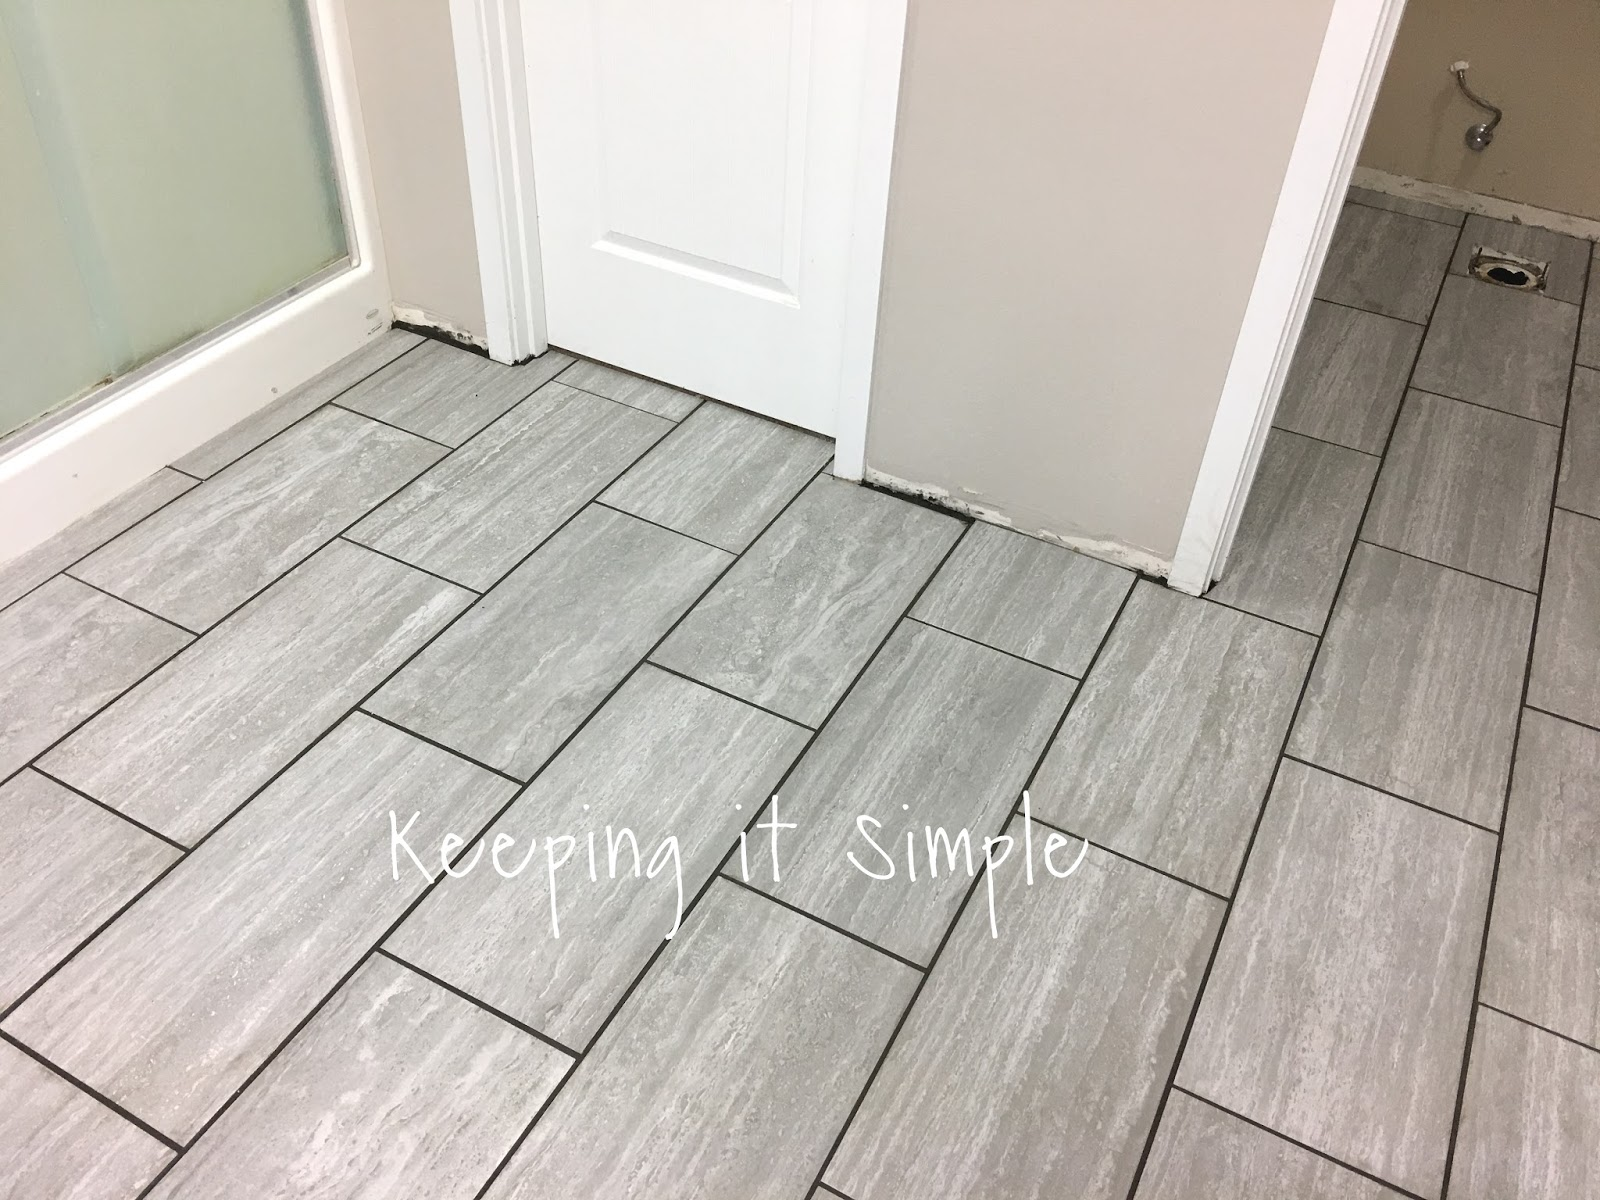 Tips on how to install tile flooring in a bathroom with ridgemont once the grout had set for about 36 hours we sealed the grout lines and then we put the toilet back on we ended up getting a new toilet dailygadgetfo Choice Image